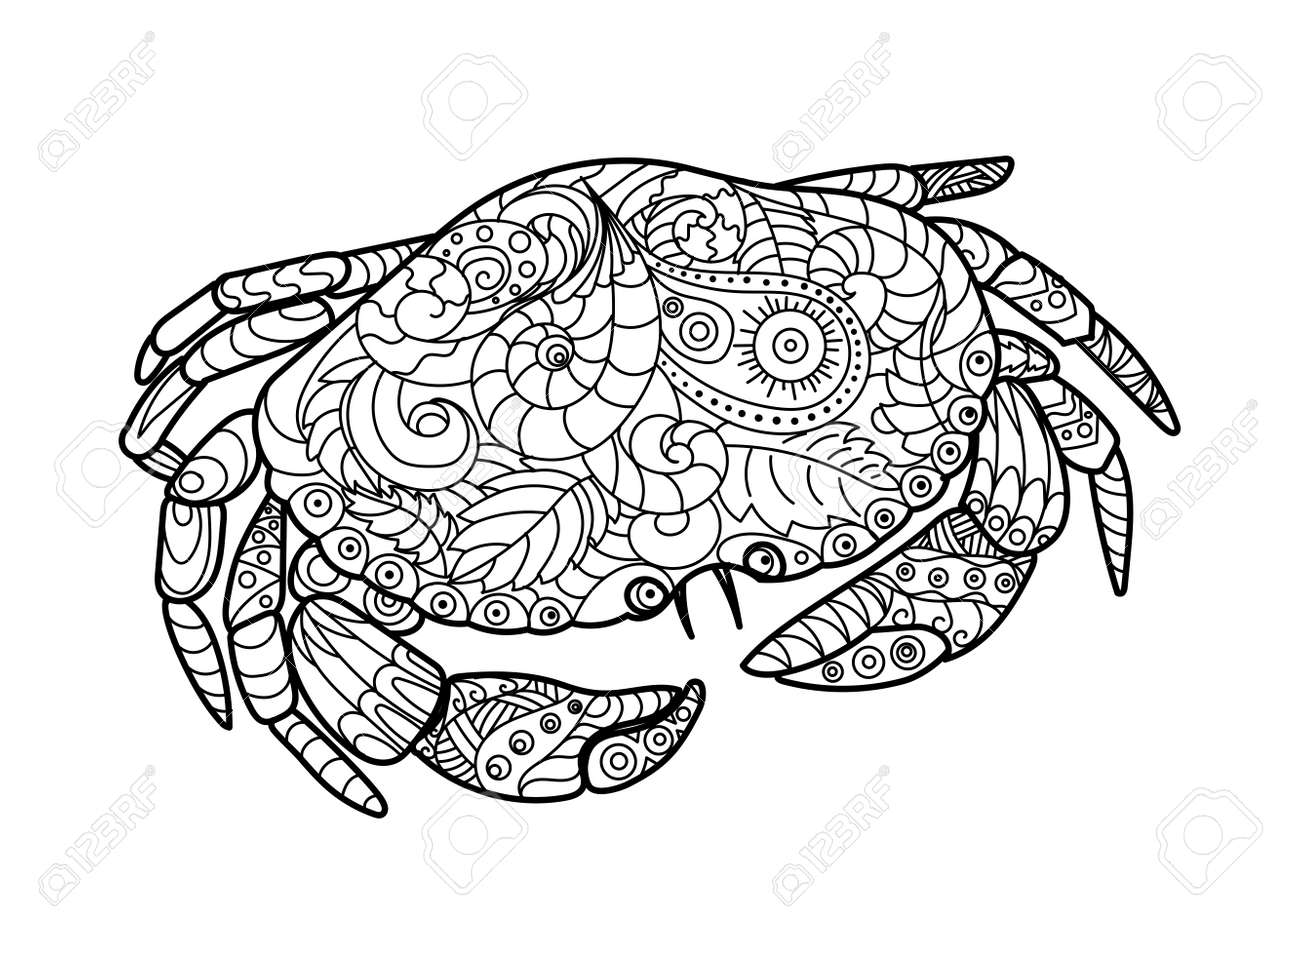 Crab Sea Animal Coloring Book For Adults Vector Illustration Anti Stress Adult